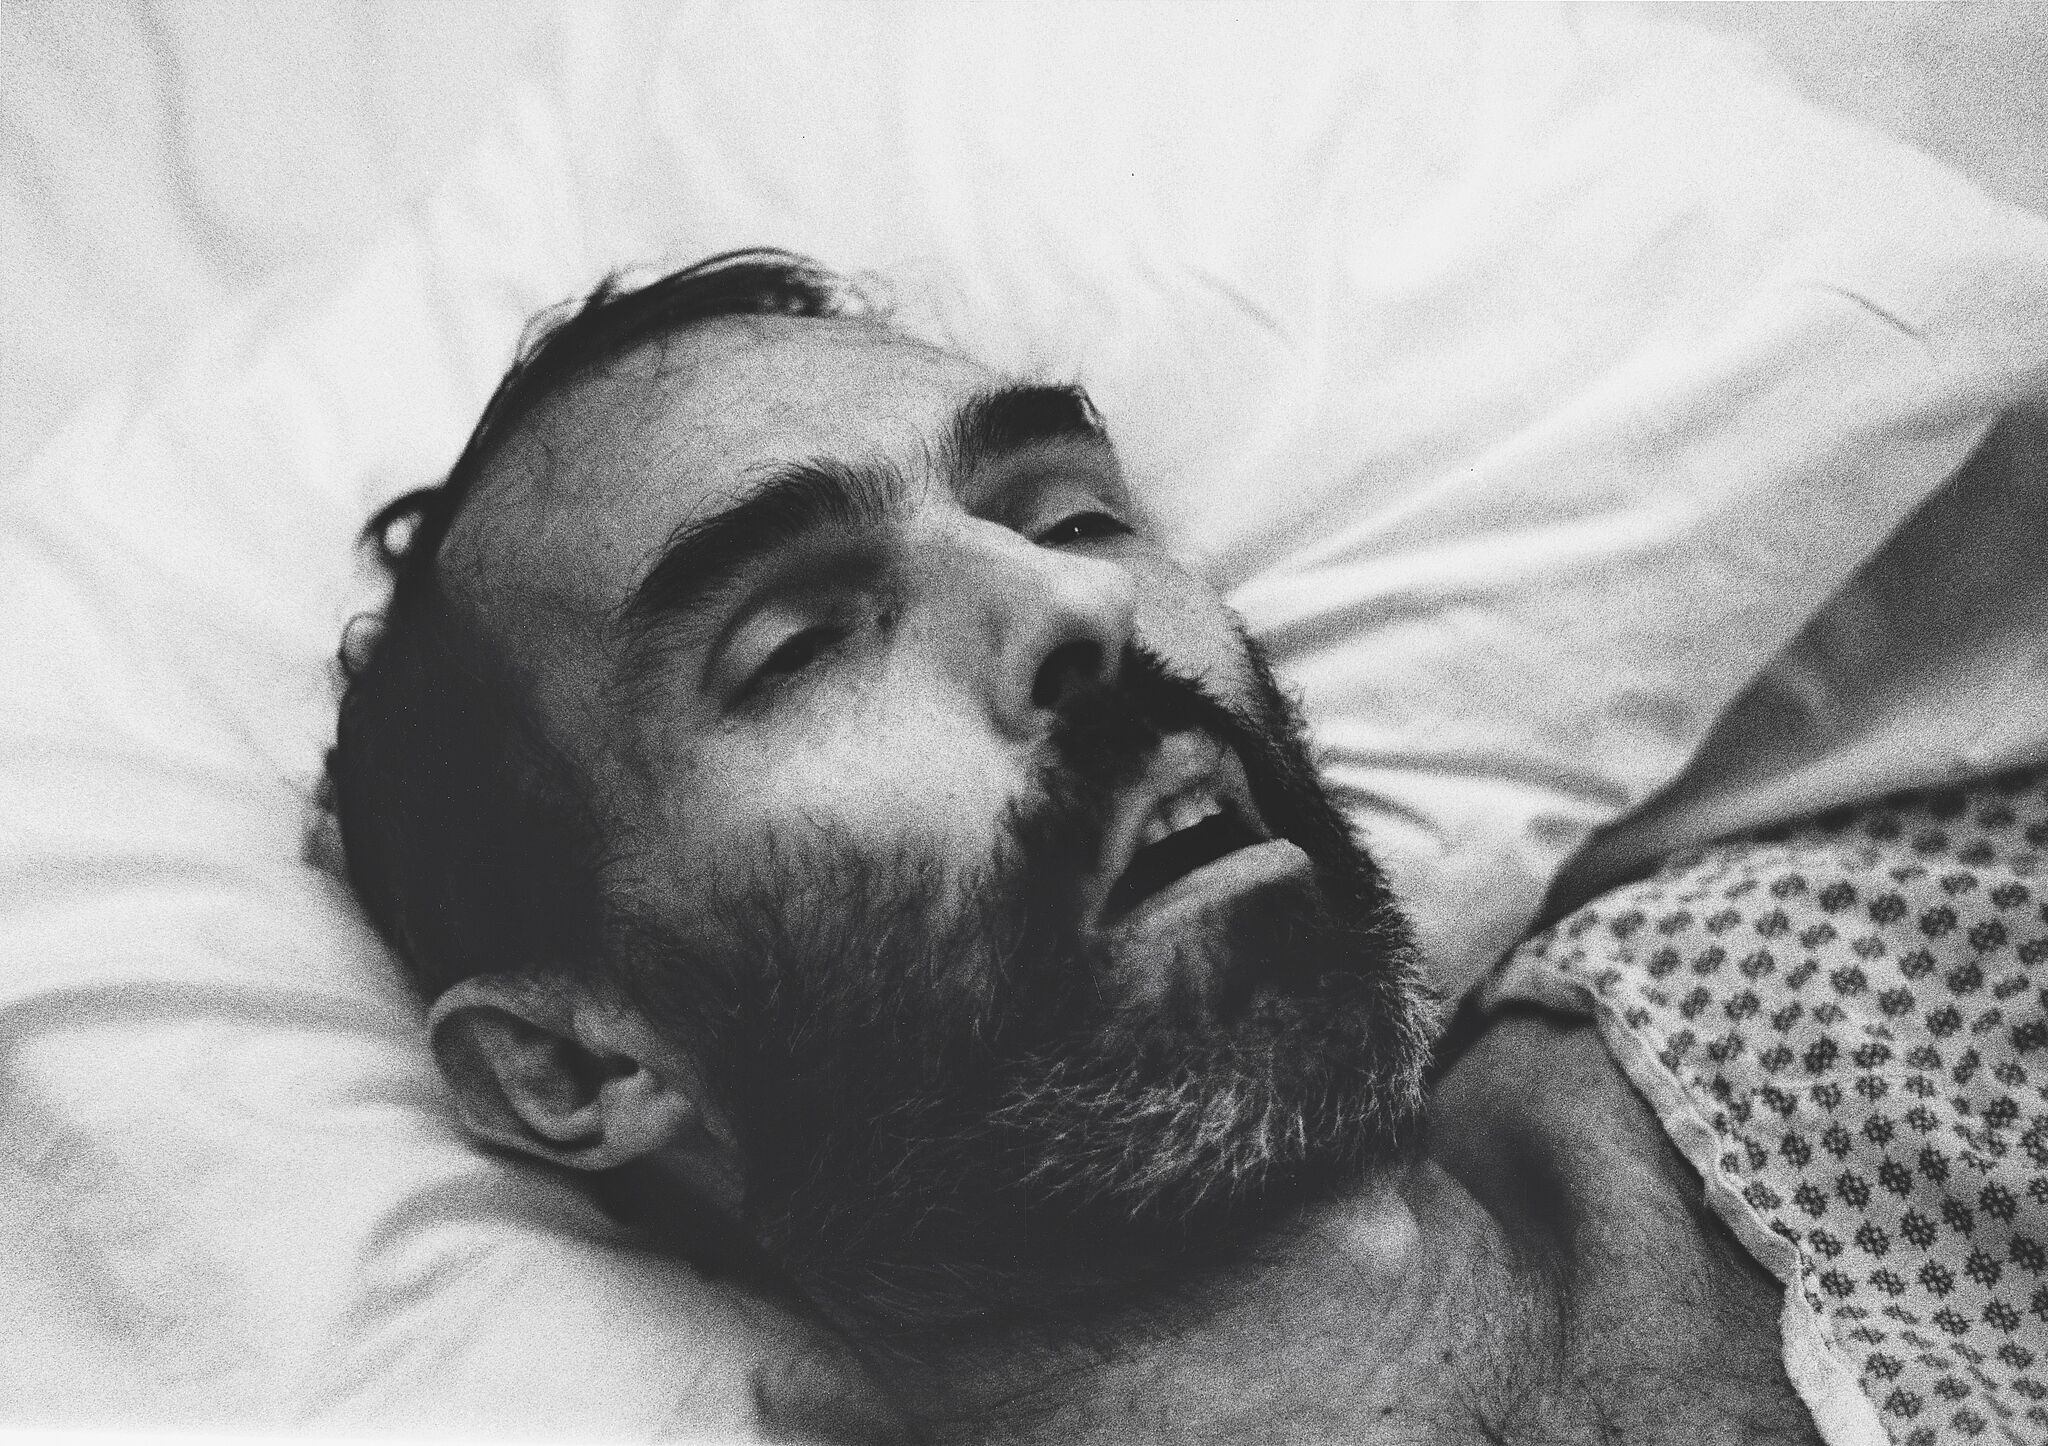 Photograph of a dead man in black and white.